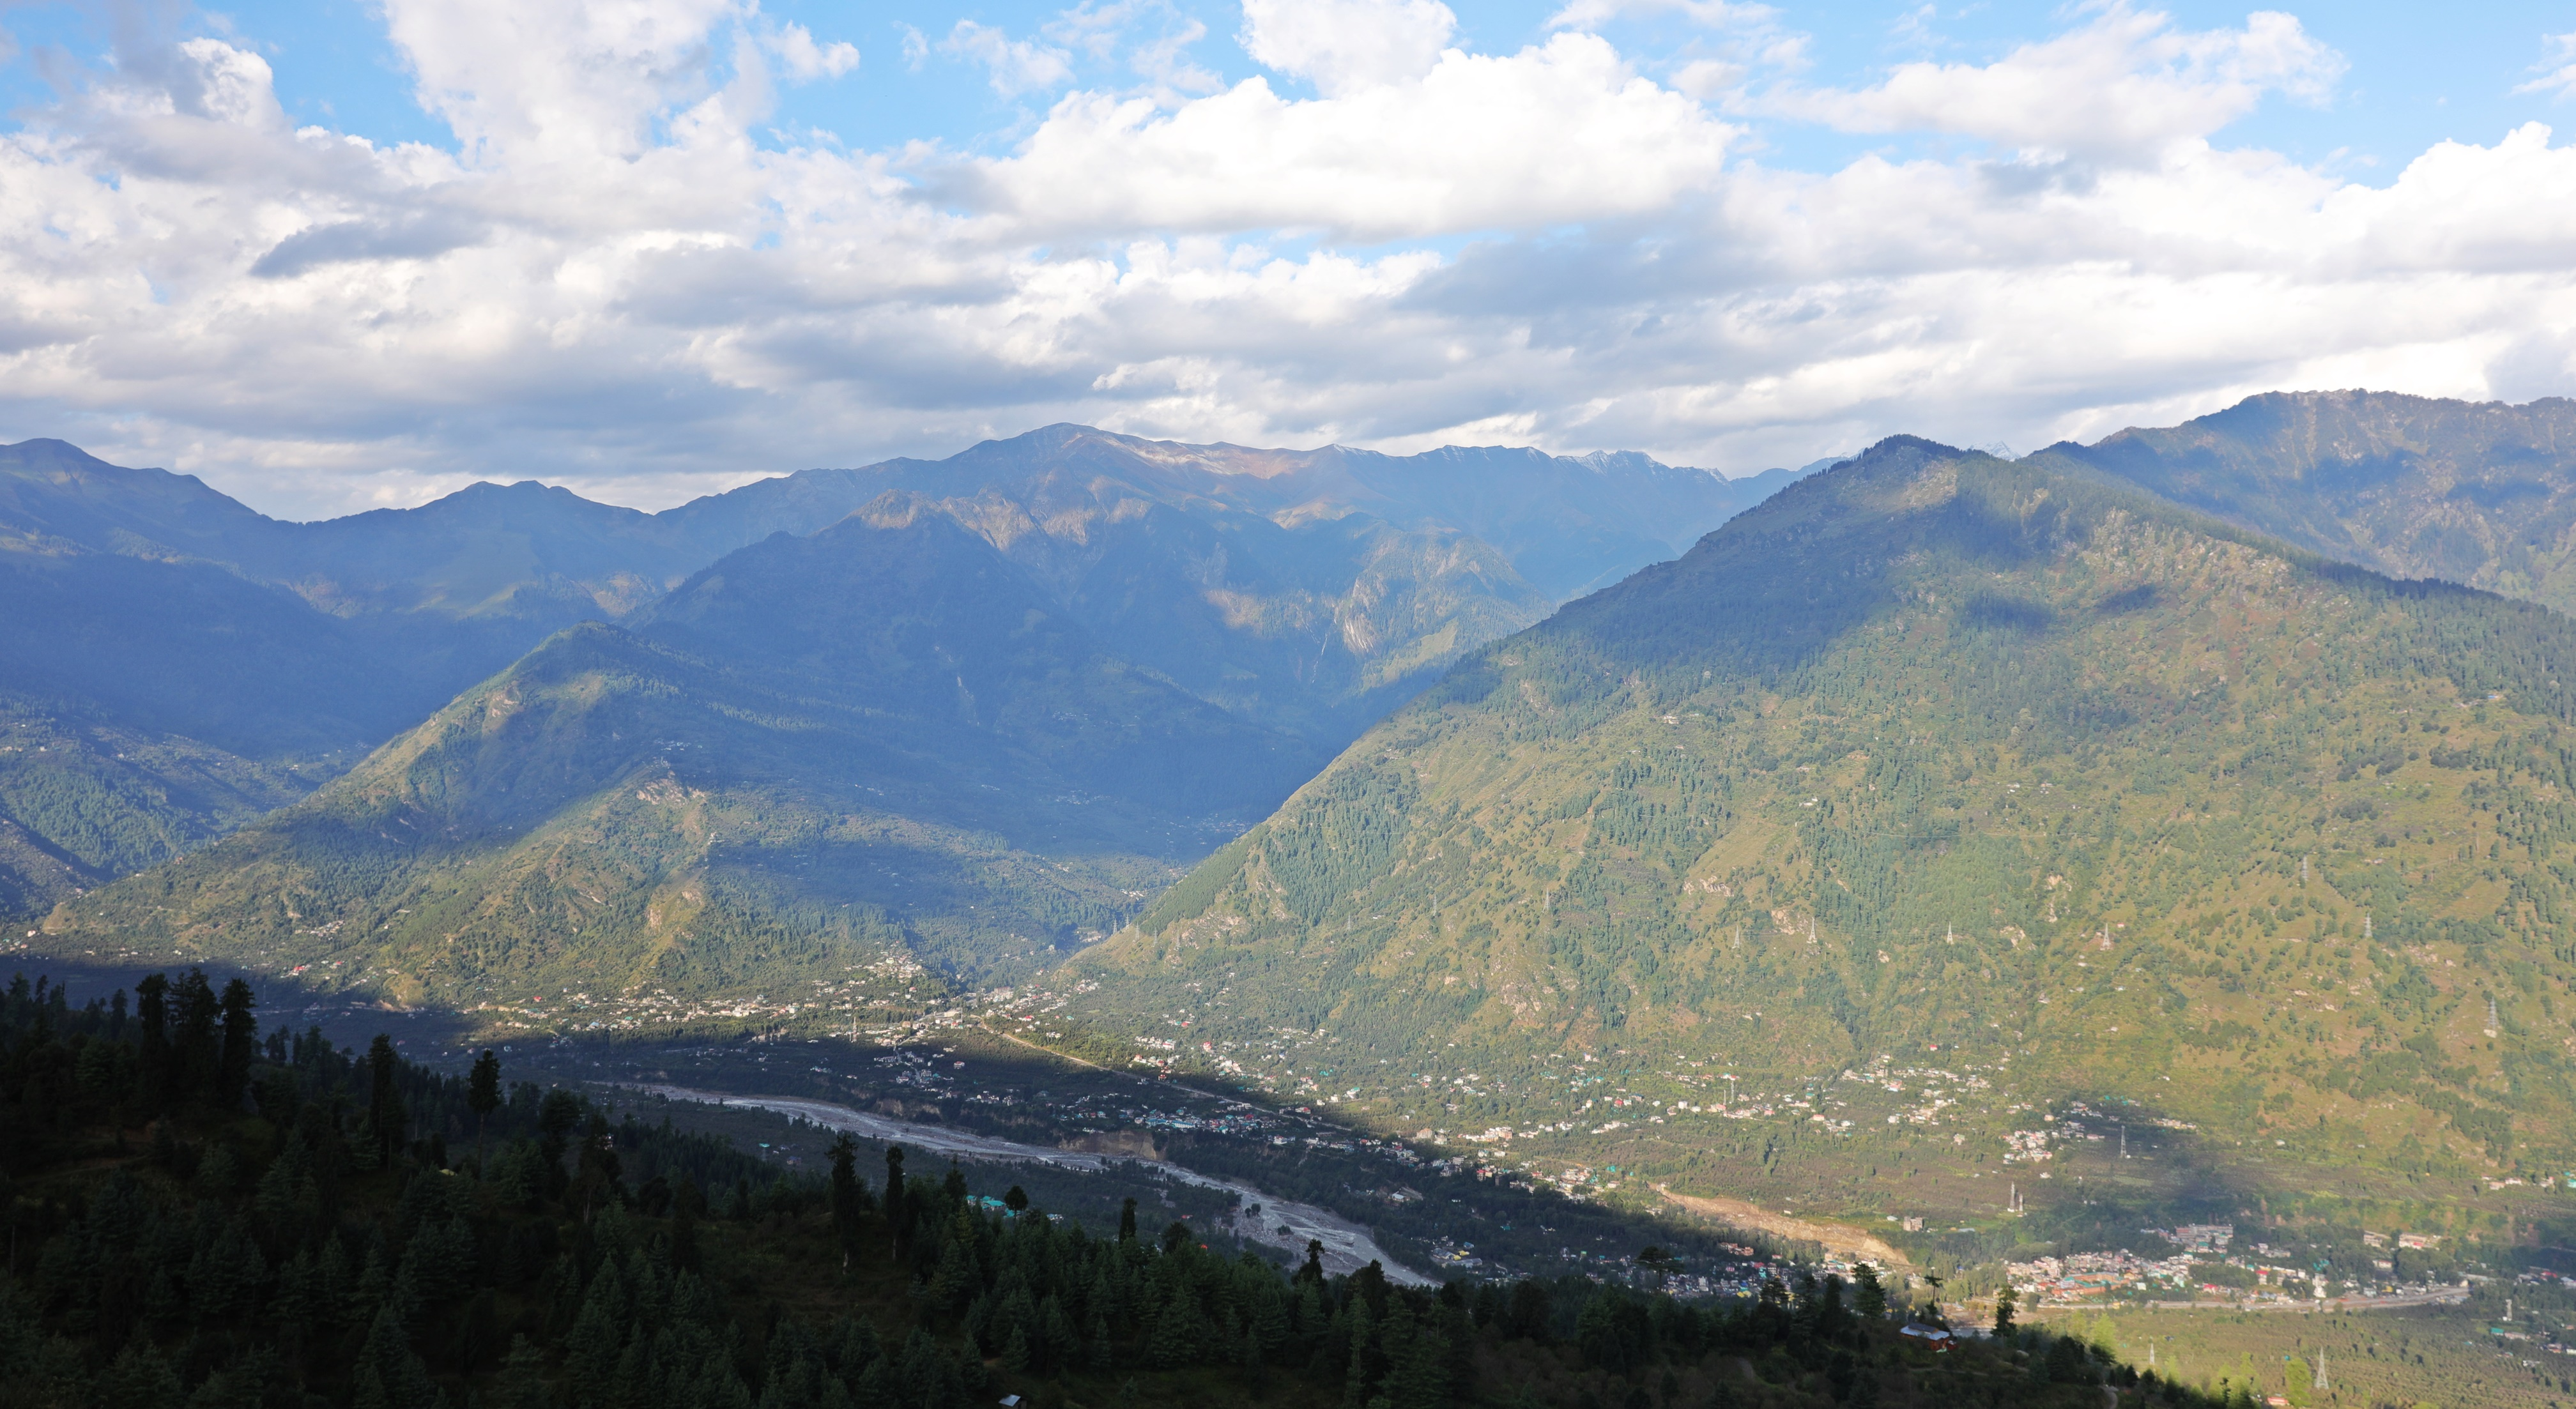 Kullu Valley as seen from Rumsu, Himachal Pradesh